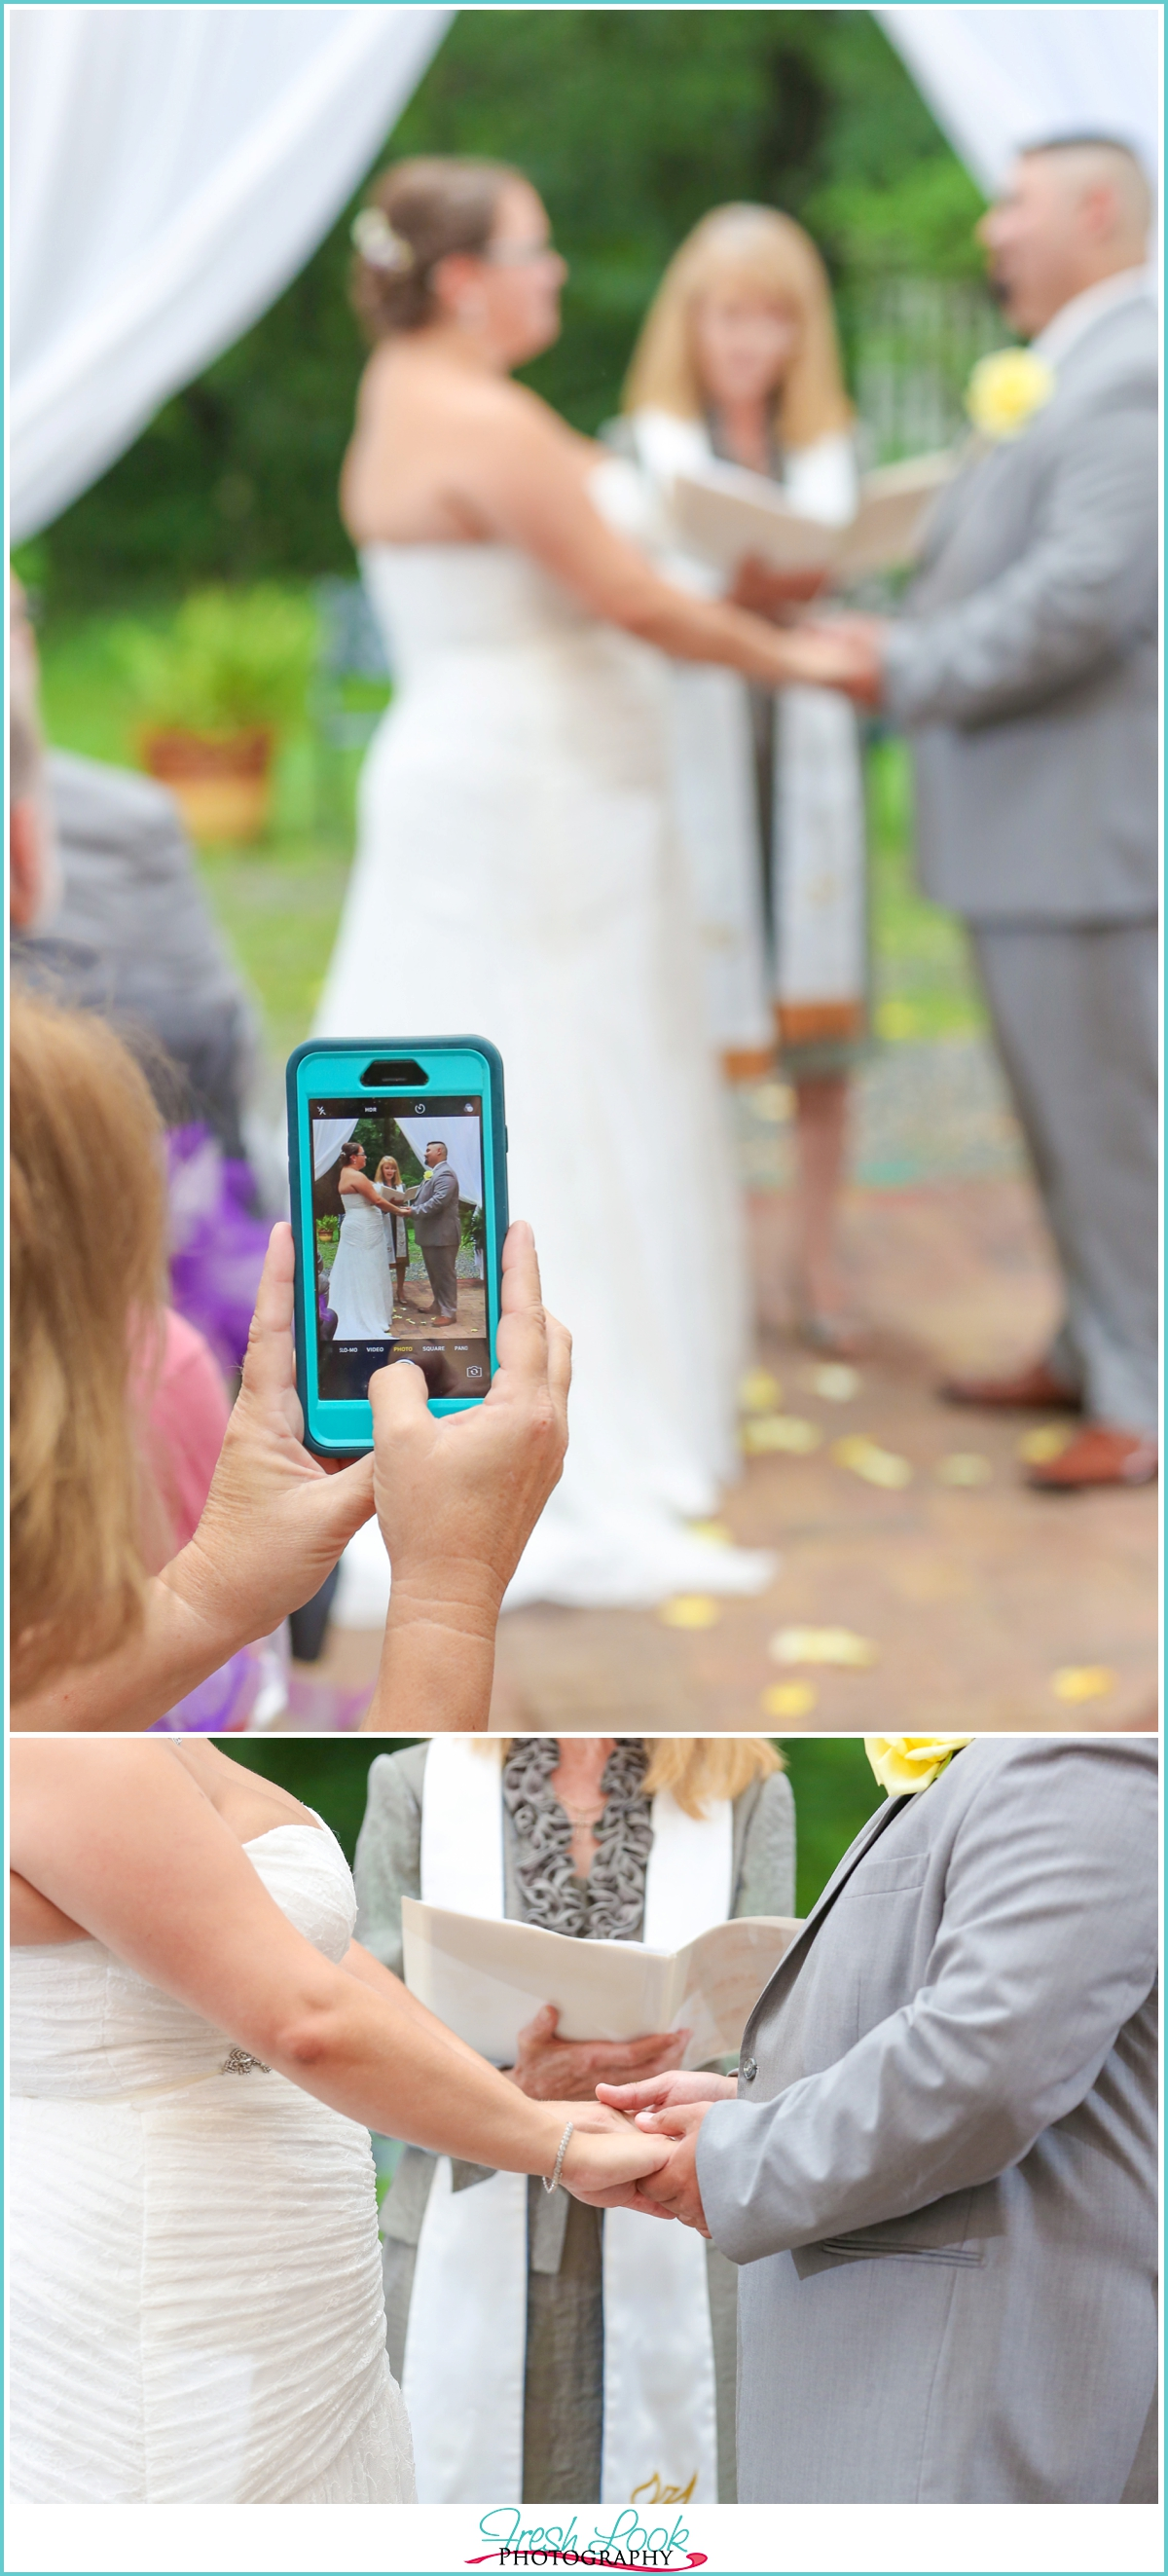 special moments during the wedding